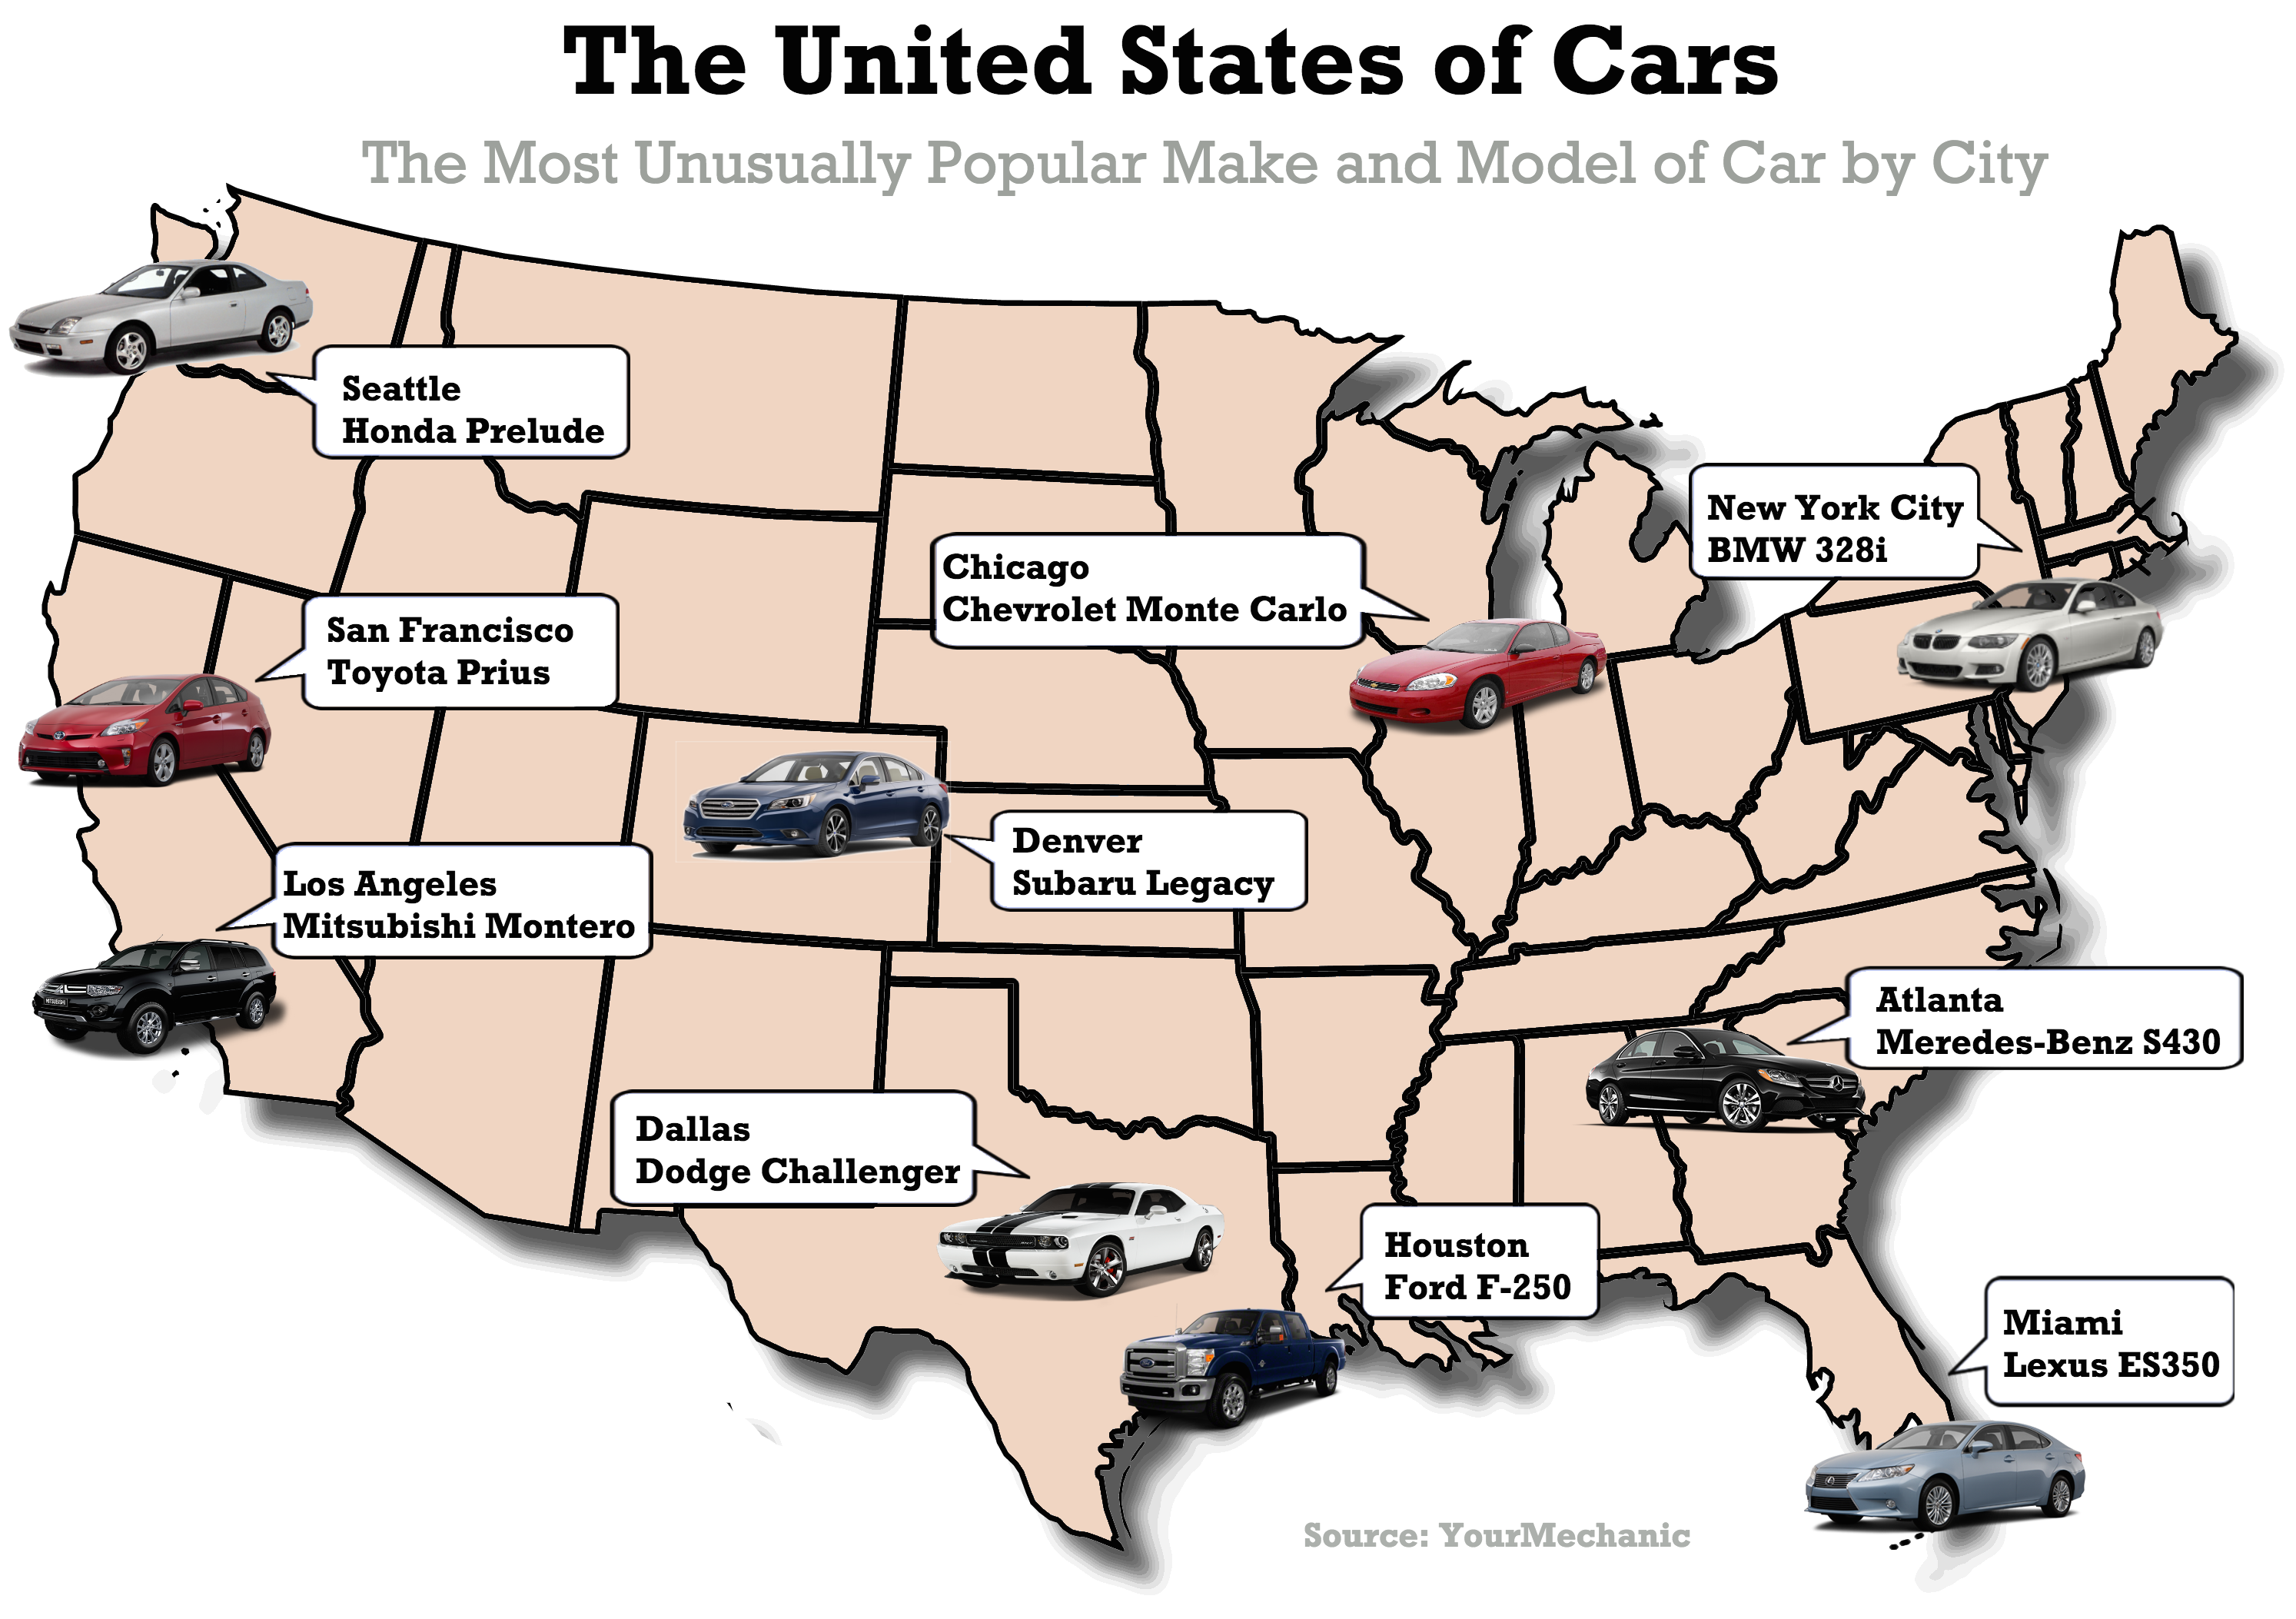 most unusually popular make and model of car by city